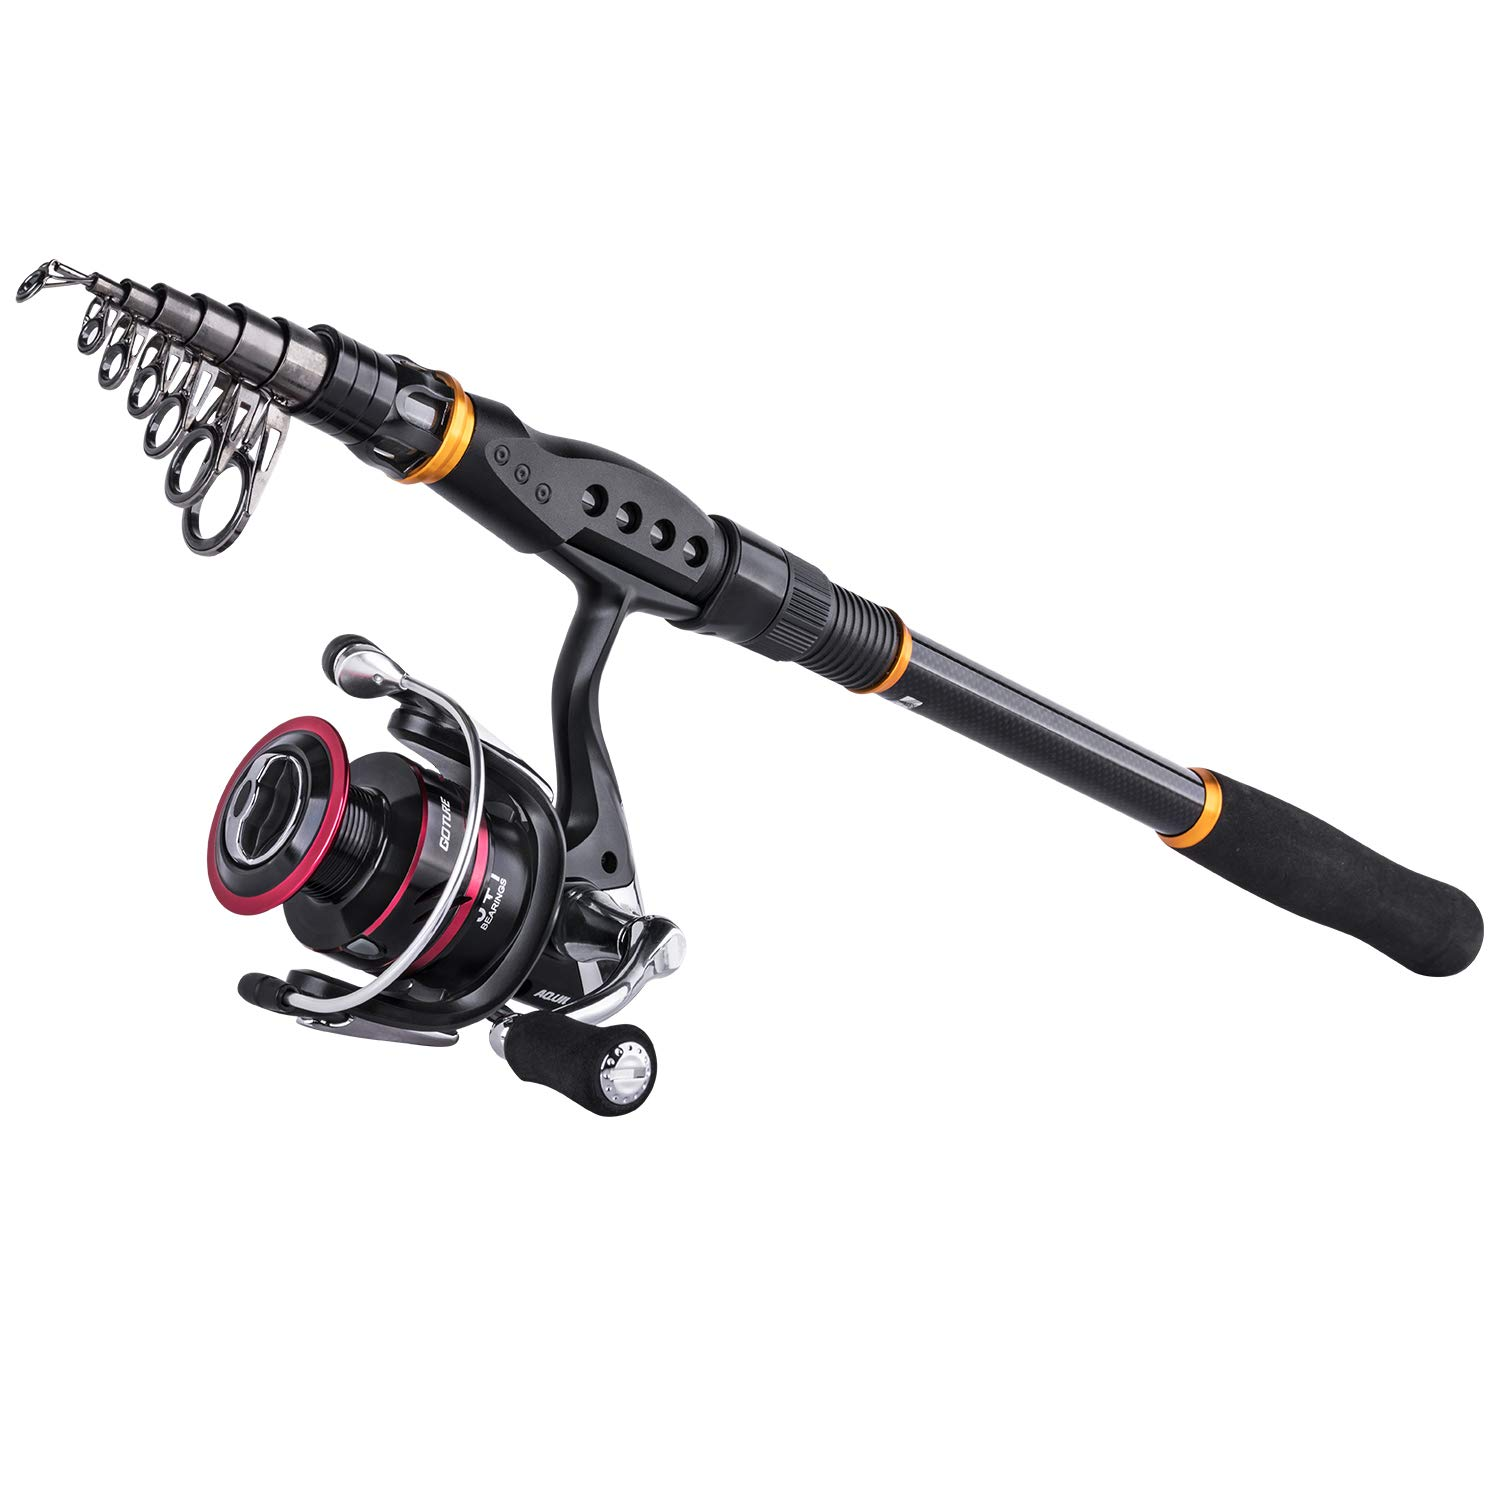 Goture Telescopic Fishing Rod,Rod Reel Red Black 5.9-11.9ft